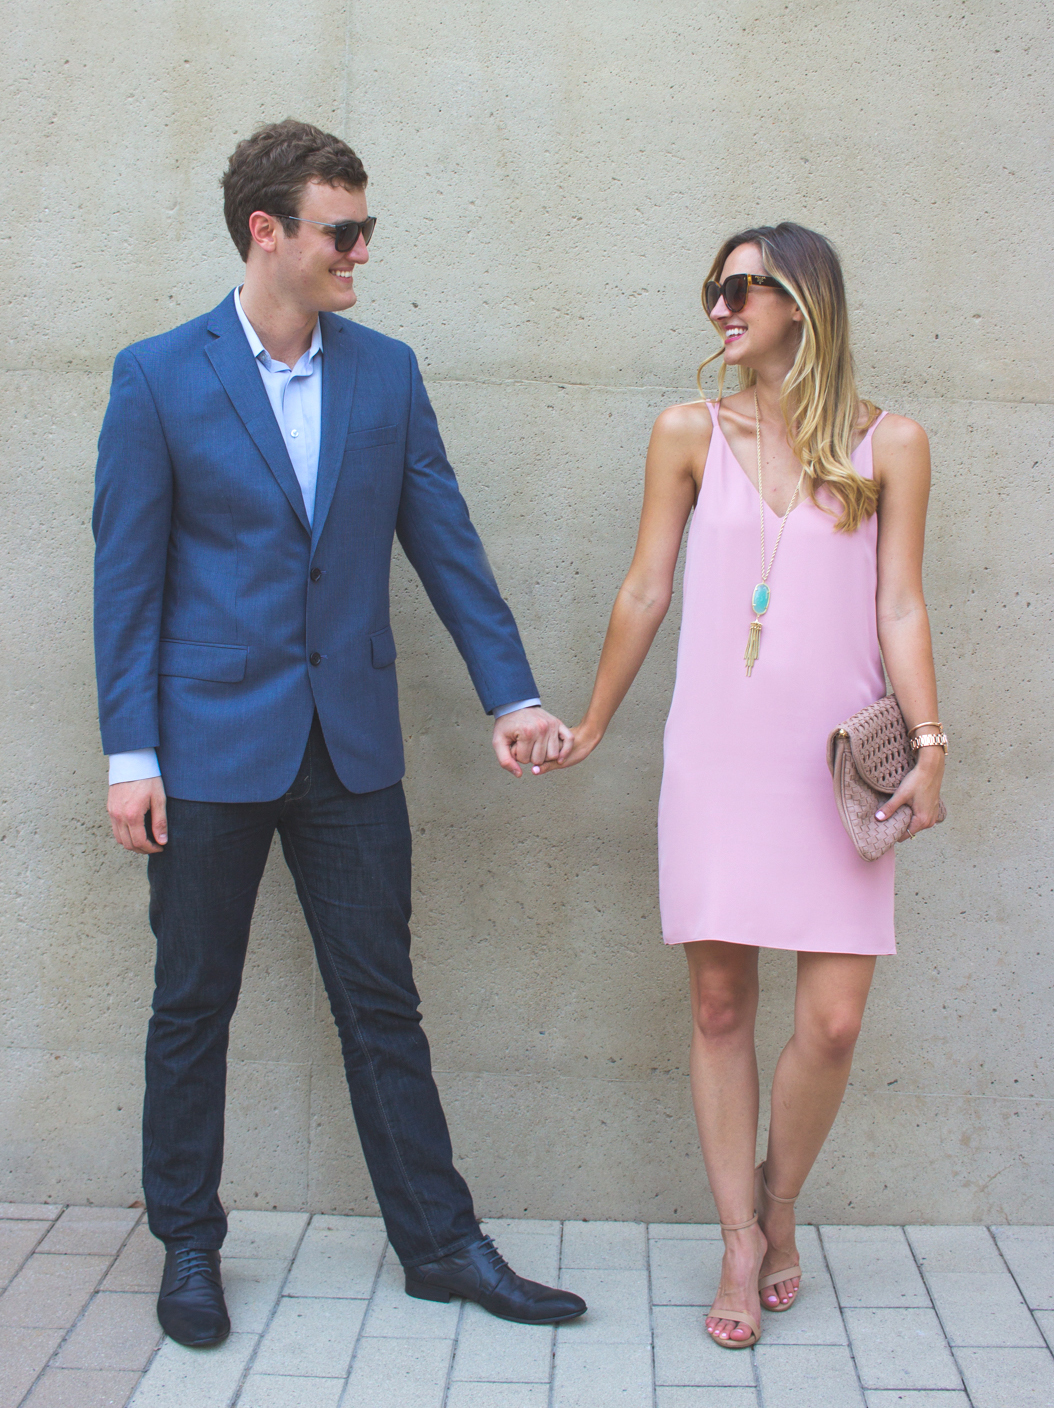 livvyland-blog-olivia-watson-date-night-summer-austin-texas-outfit-inspiration-topshop-blush-pink-slip-dress-nordstrom-mens-suit-fashion-blogger-3